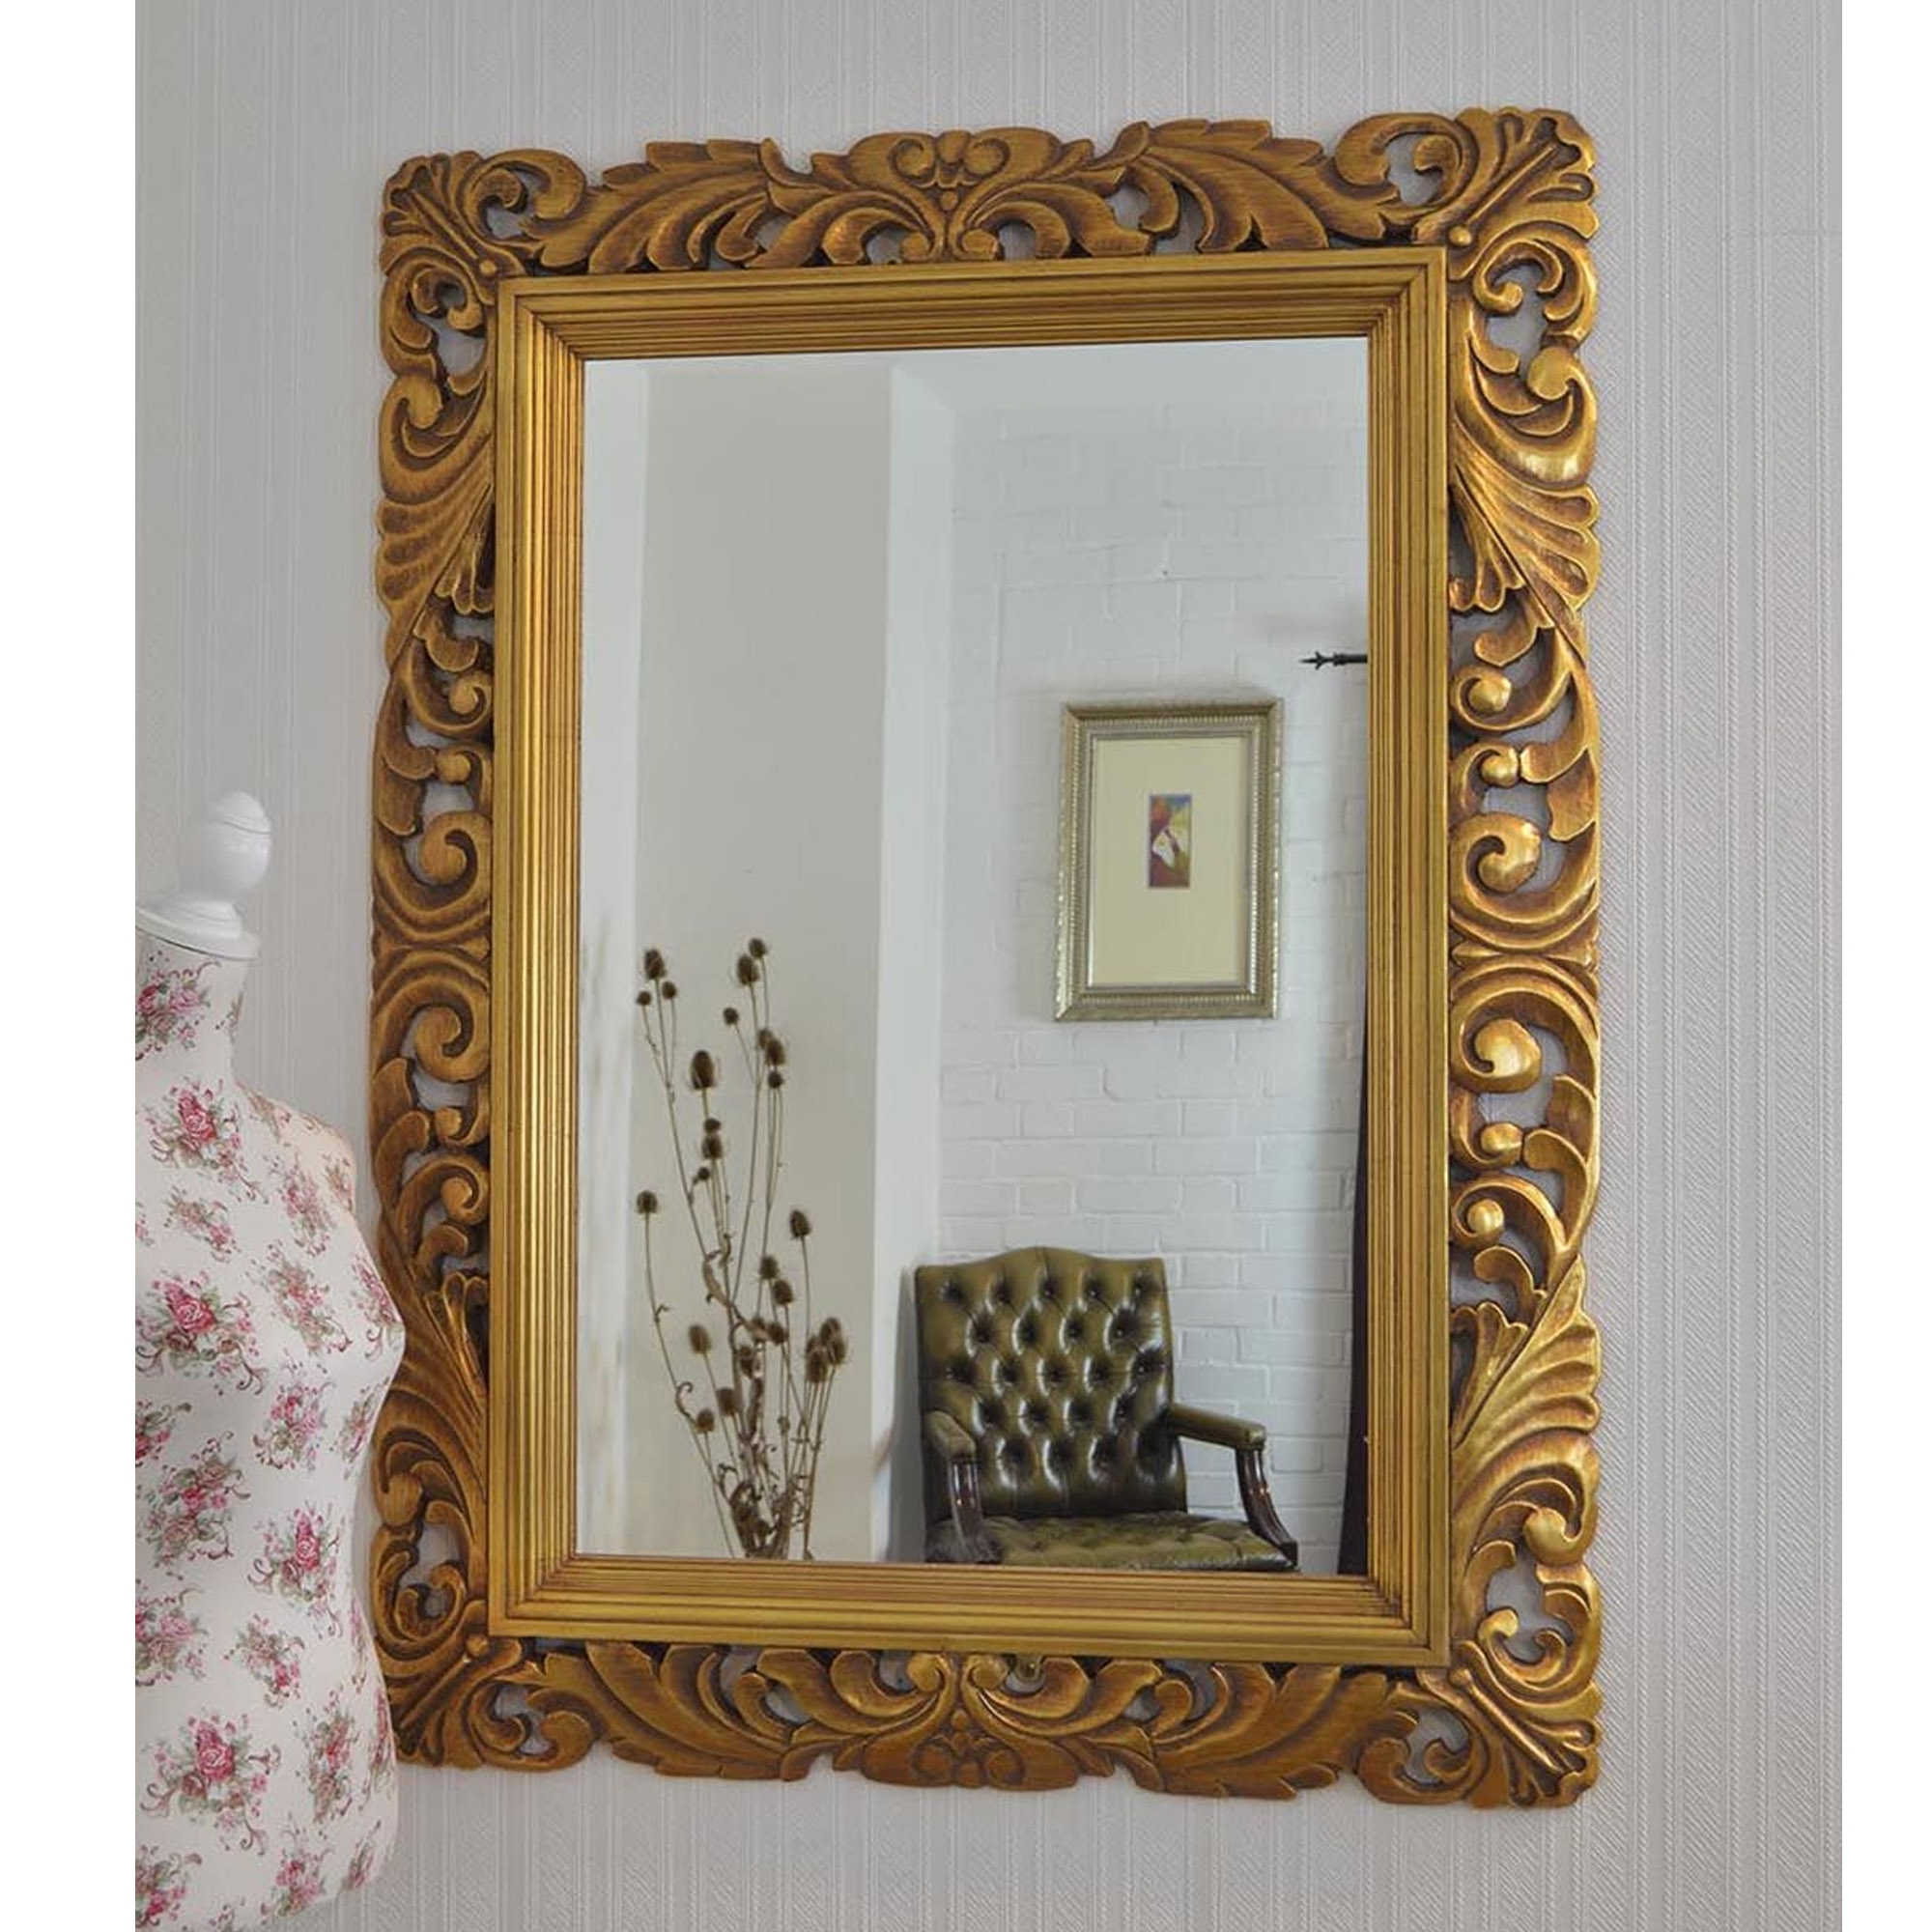 Well Known Ornate Framed Gold Antique French Style Wall Mirror Pertaining To Ornate Wall Mirrors (View 10 of 20)